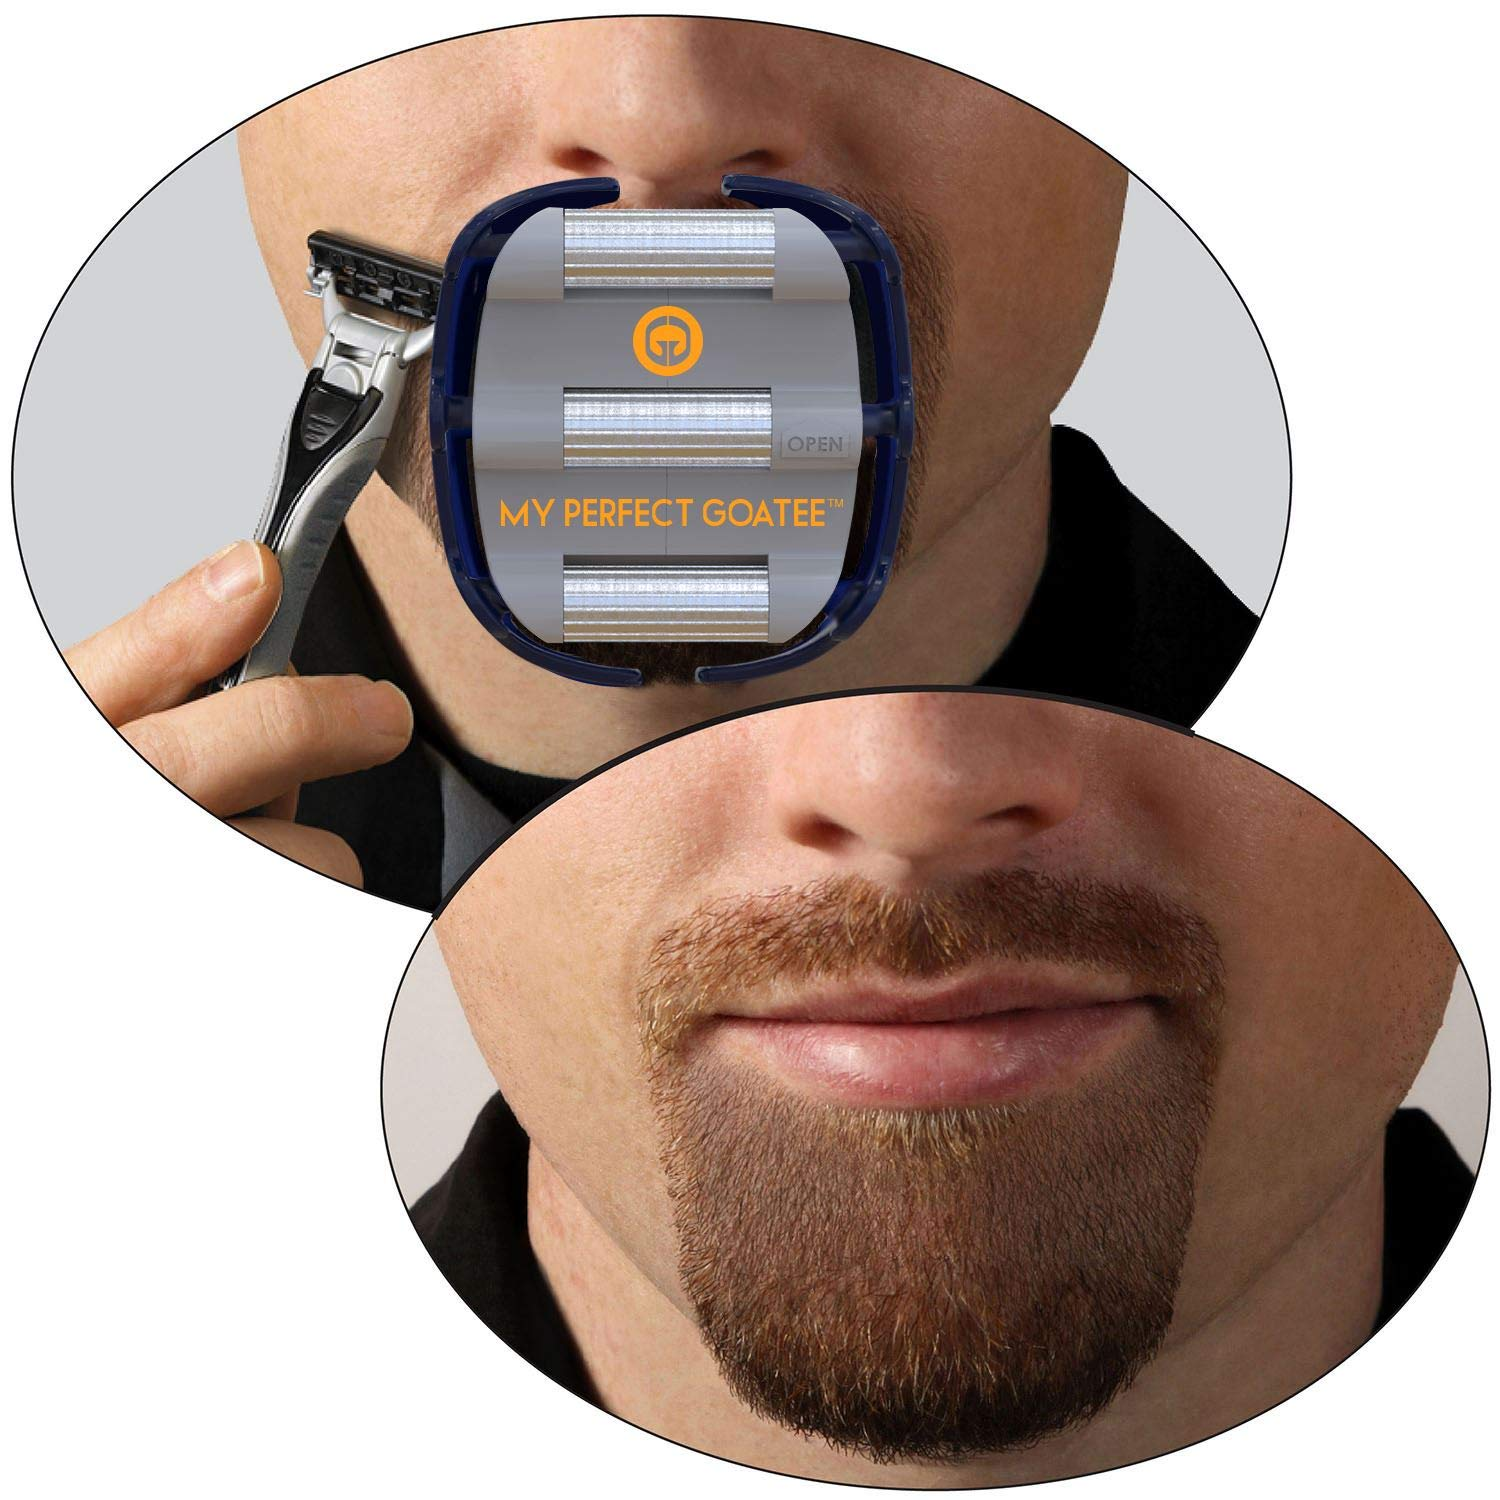 Amazon Com Mens Goatee Shaving Template Create A Perfectly Shaped Goatee Every Time Adjustable Reduces Shaving Time Shape Van Dyke Goatee And Circle Beard By Goateesaver Version 1 1 Health Personal Care